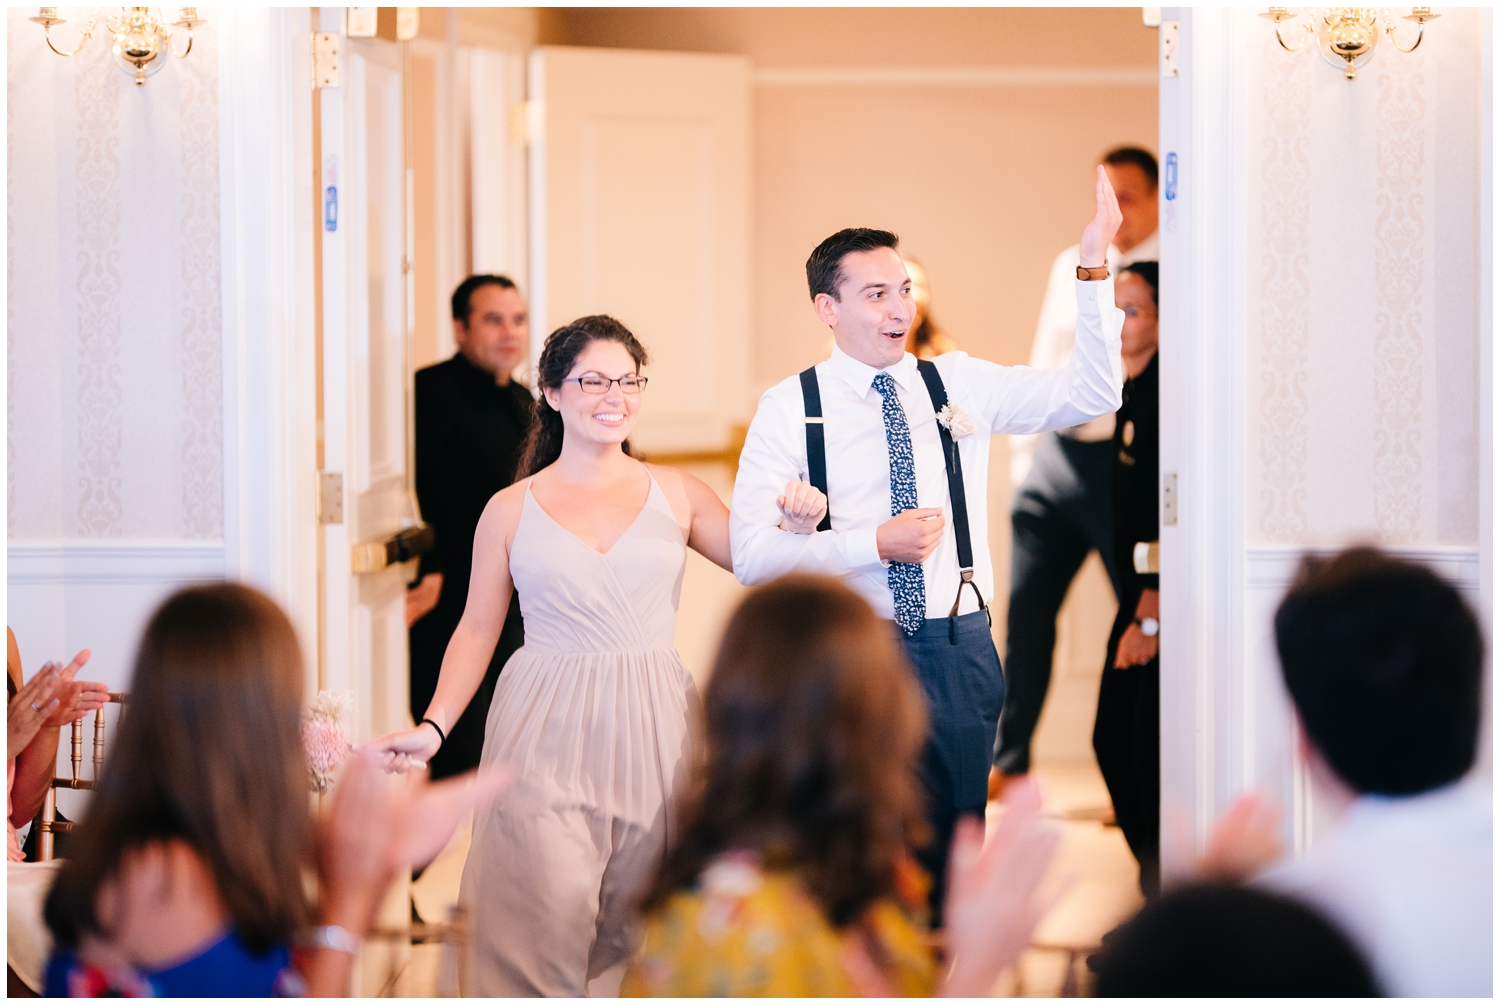 Madison Beach Hotel Wedding - Steven & Jessica_0193.jpg